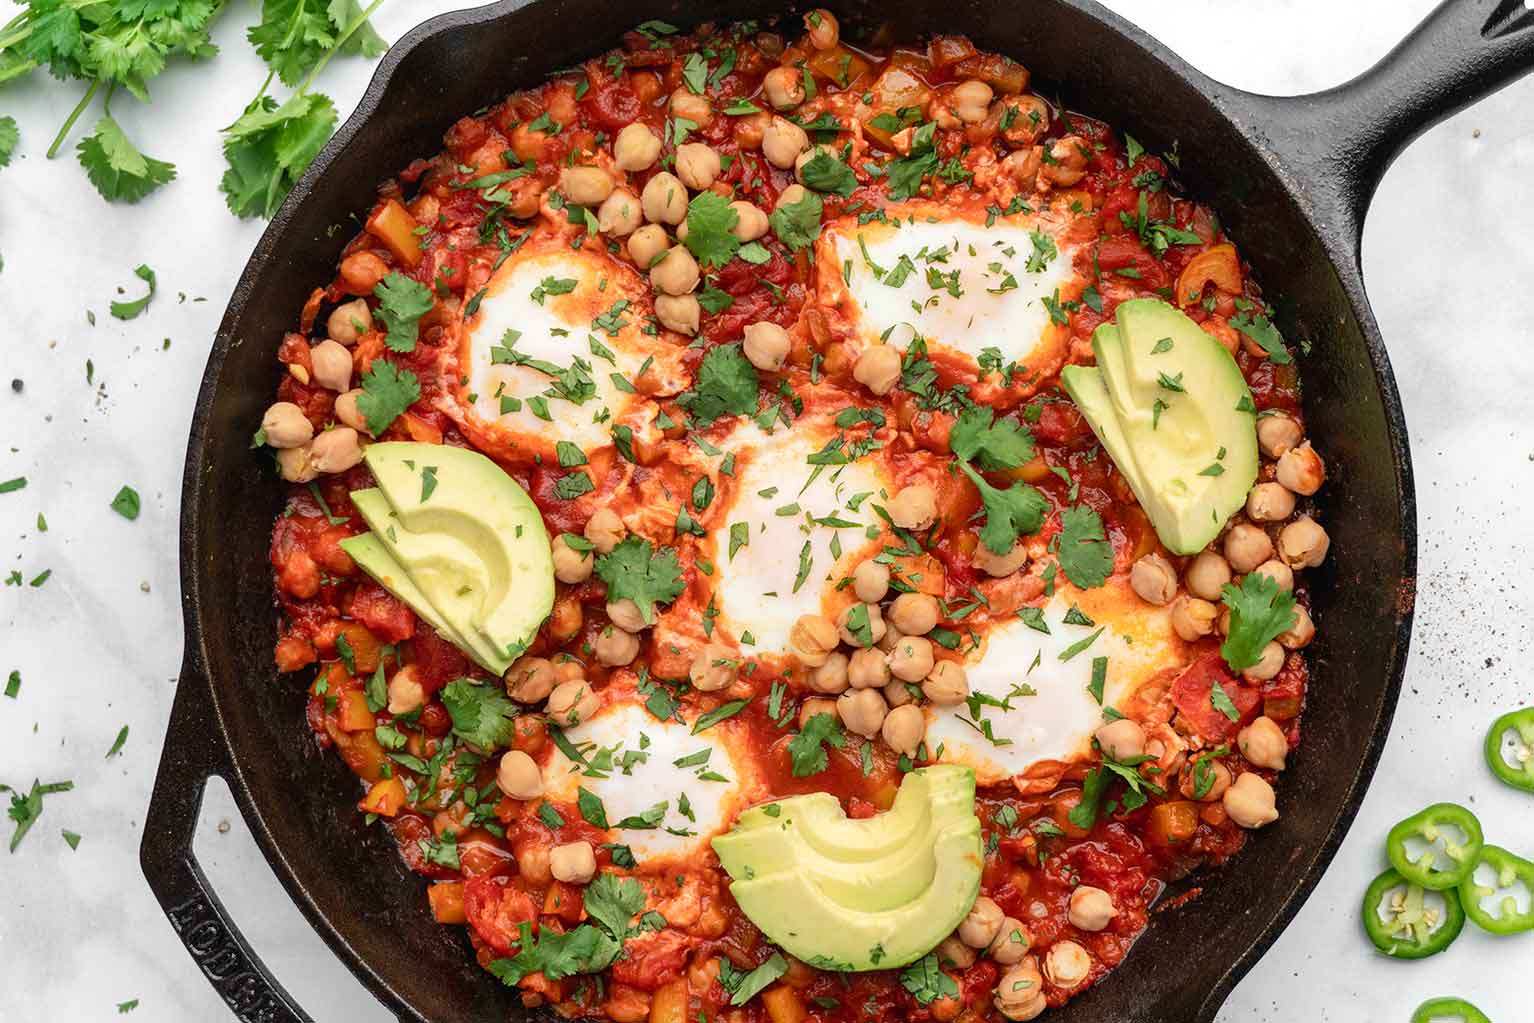 Shakshuka-with-eggs-chickpeas-avocado-and-tomato-sauce-in-cast-iron-skillet